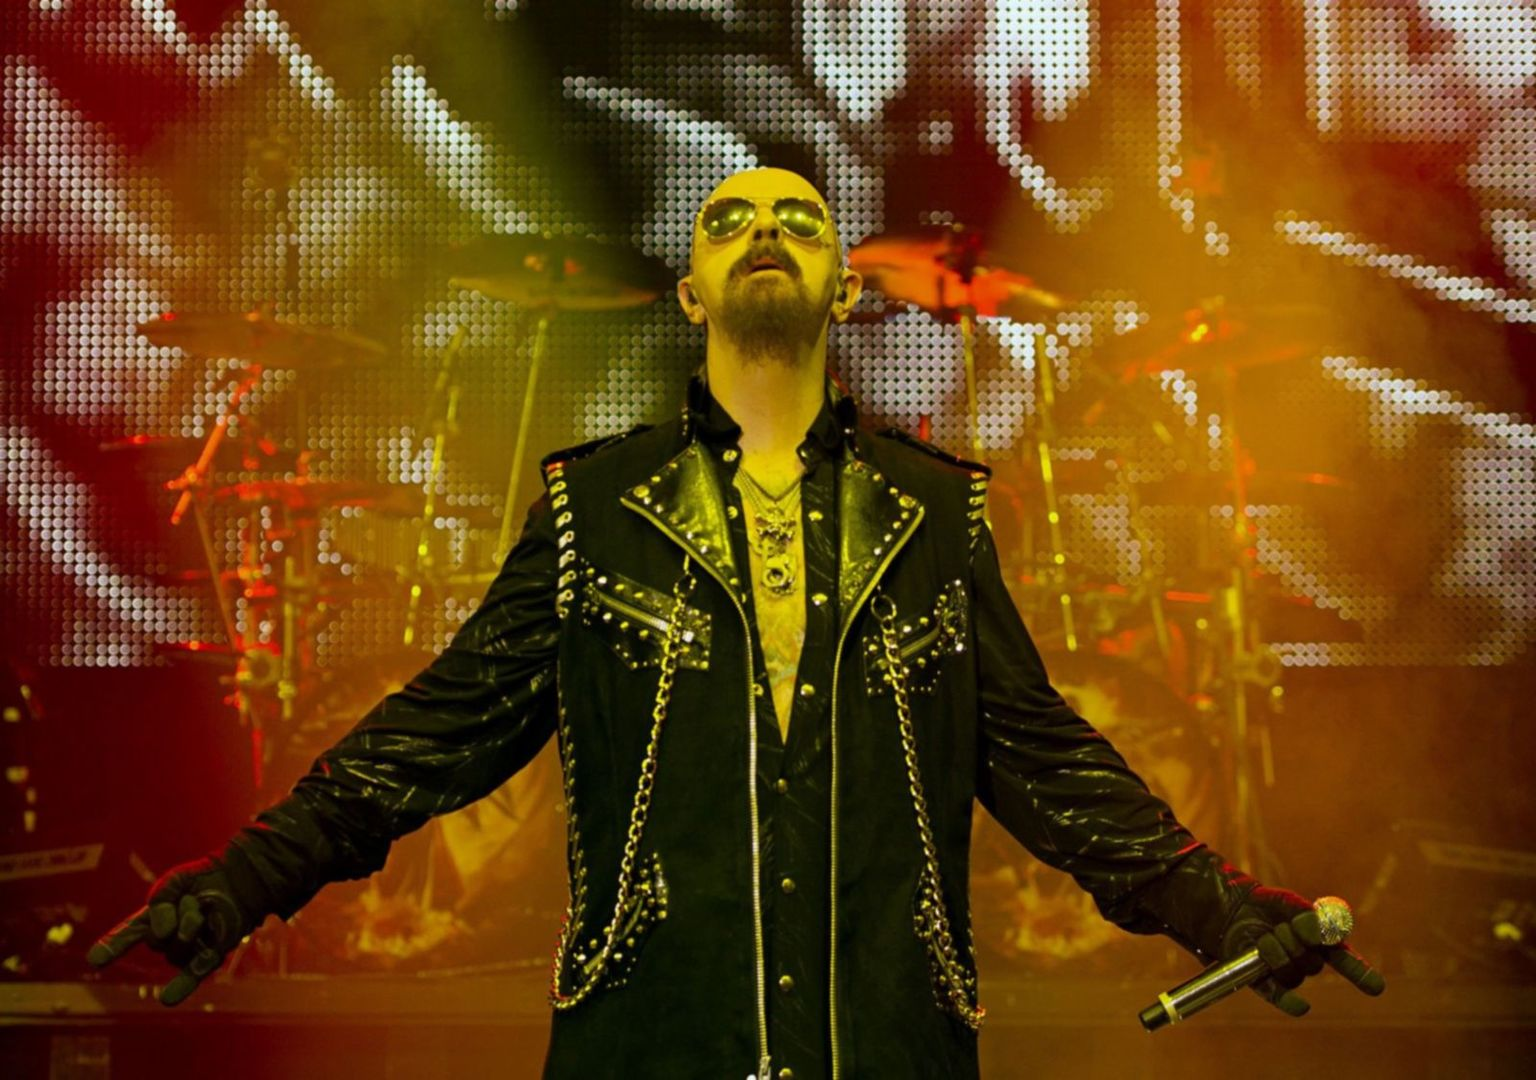 Judas Priest live